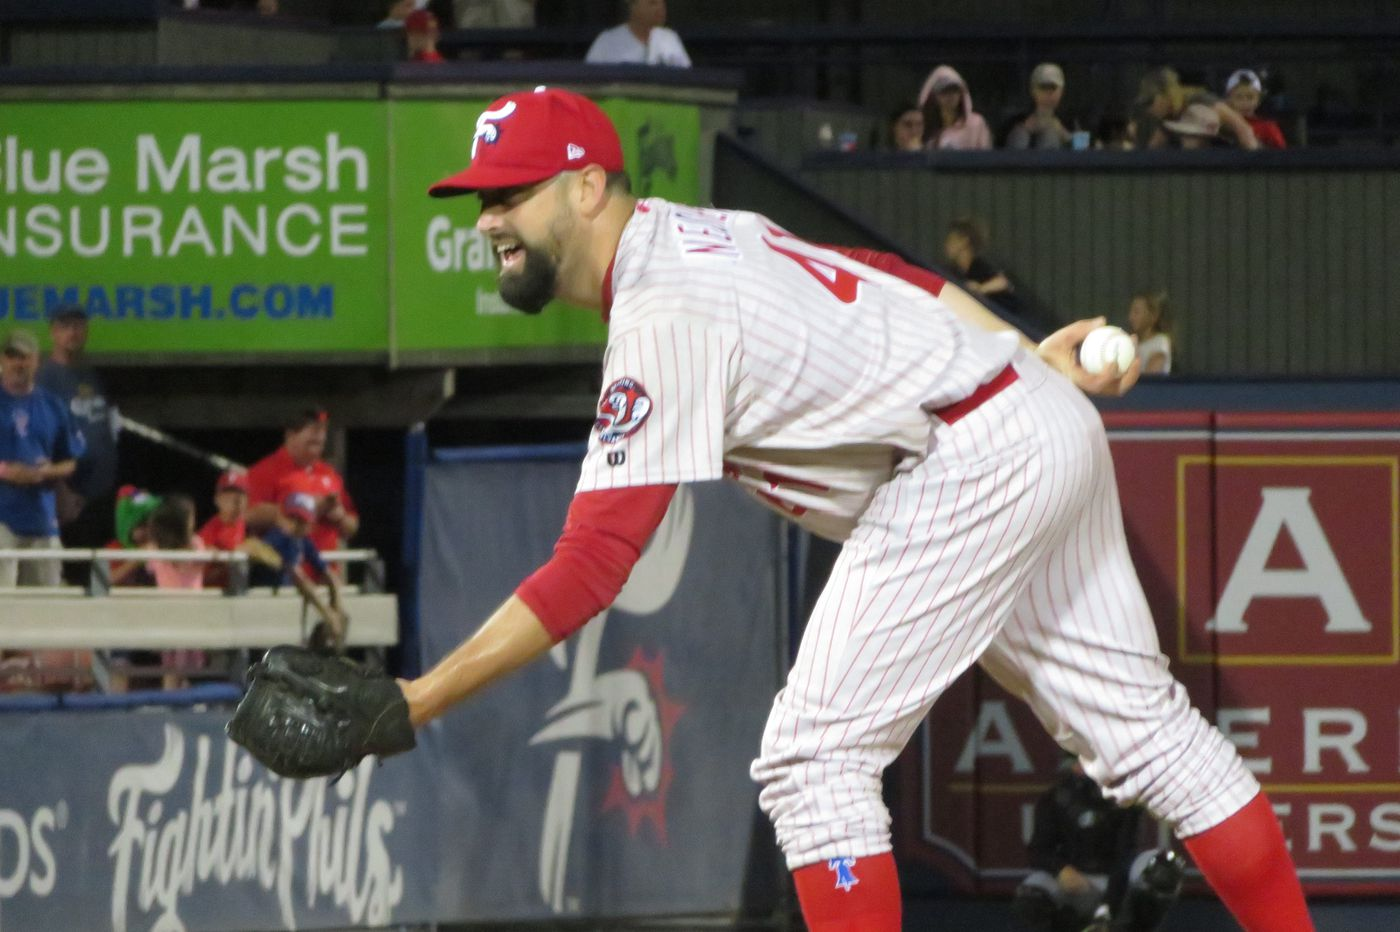 Phillies' Pat Neshek could return after Friday's rehab outing in minor leagues